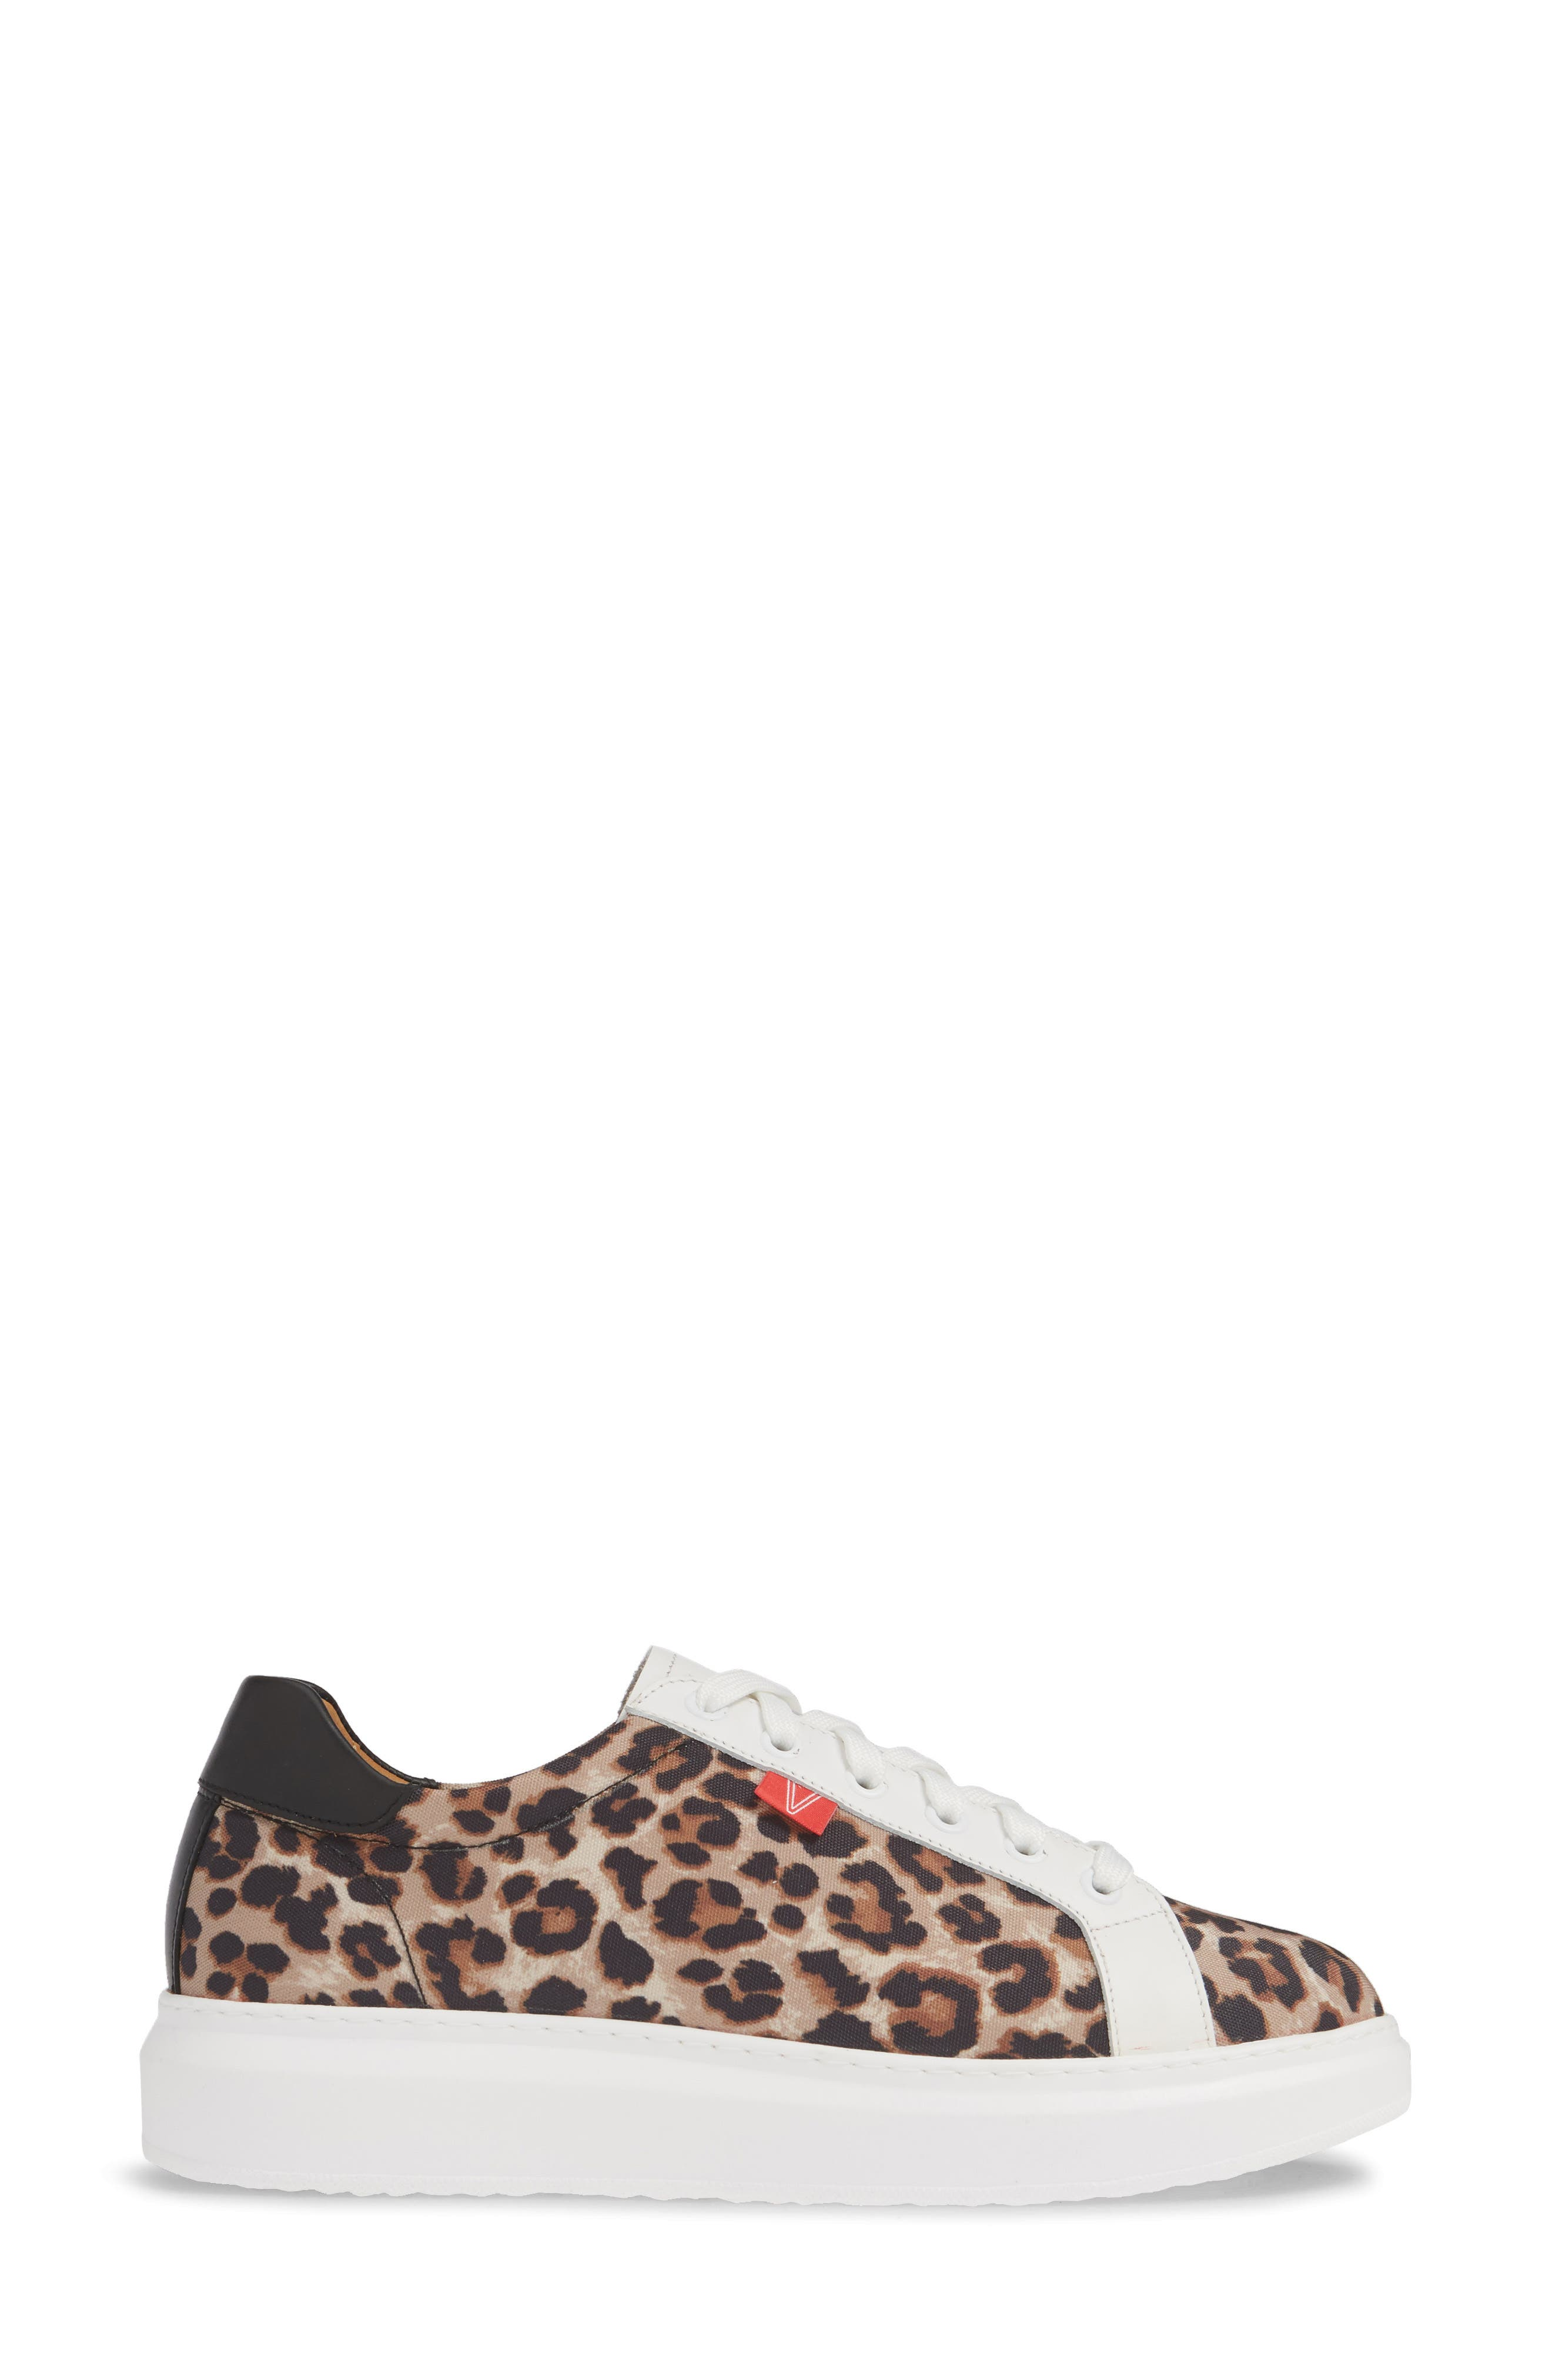 VERONICA BEARD, Daelyn Leopard Print Sneaker, Alternate thumbnail 3, color, LEOPARD